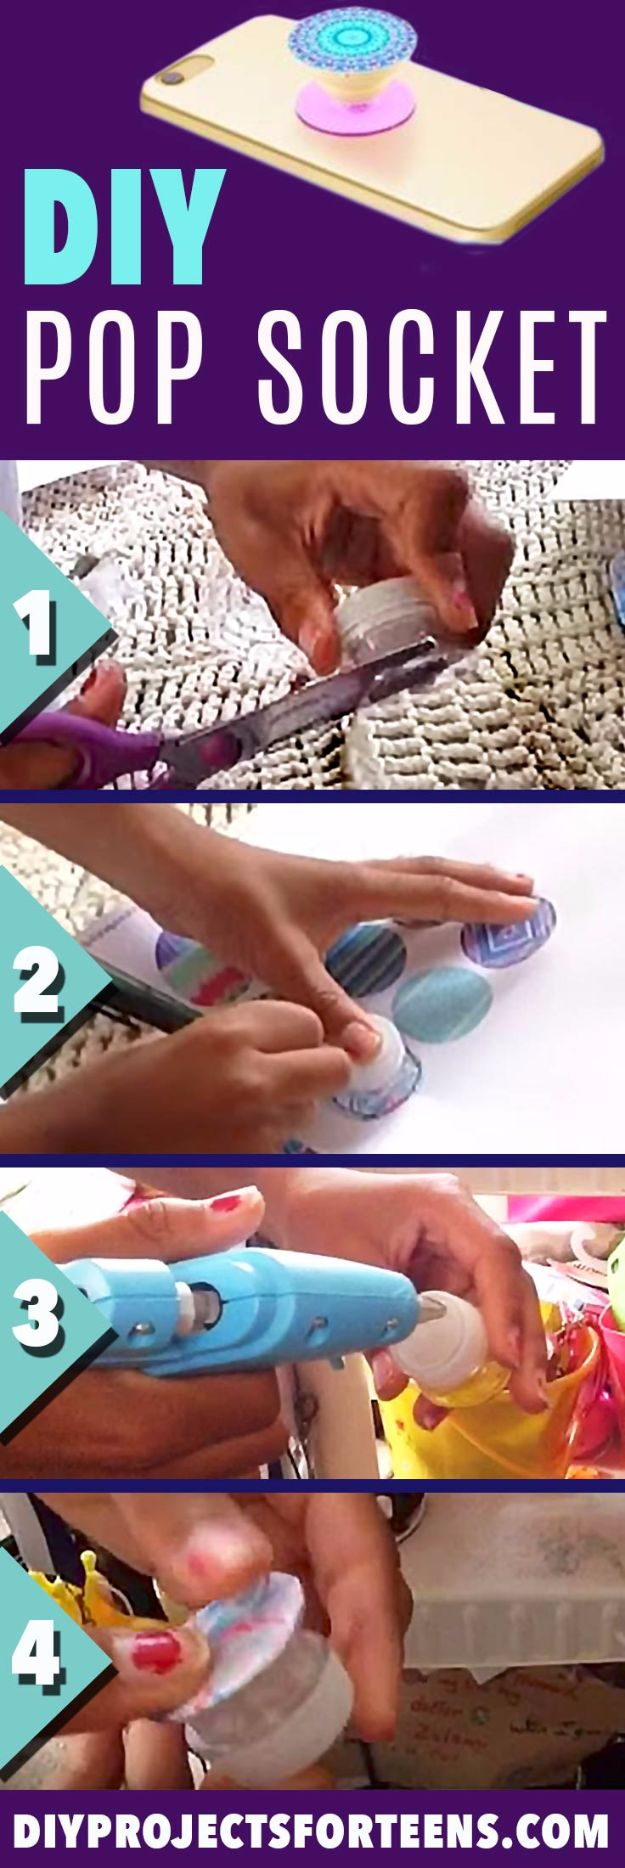 Crafts for Teens to Make and Sell - DIY Pop Socket - Cheap and Easy DIY Ideas To Make For Extra Money - Best Things to Sell On Etsy, Dollar Store Craft Ideas, Quick Projects for Teenagers To Make Spending Cash - DIY Gifts, Wall Art, School Supplies, Room Decor, Jewelry, Fashion, Hair Accessories, Bracelets, Magnets http://diyprojectsforteens.com/crafts-to-sell-teens